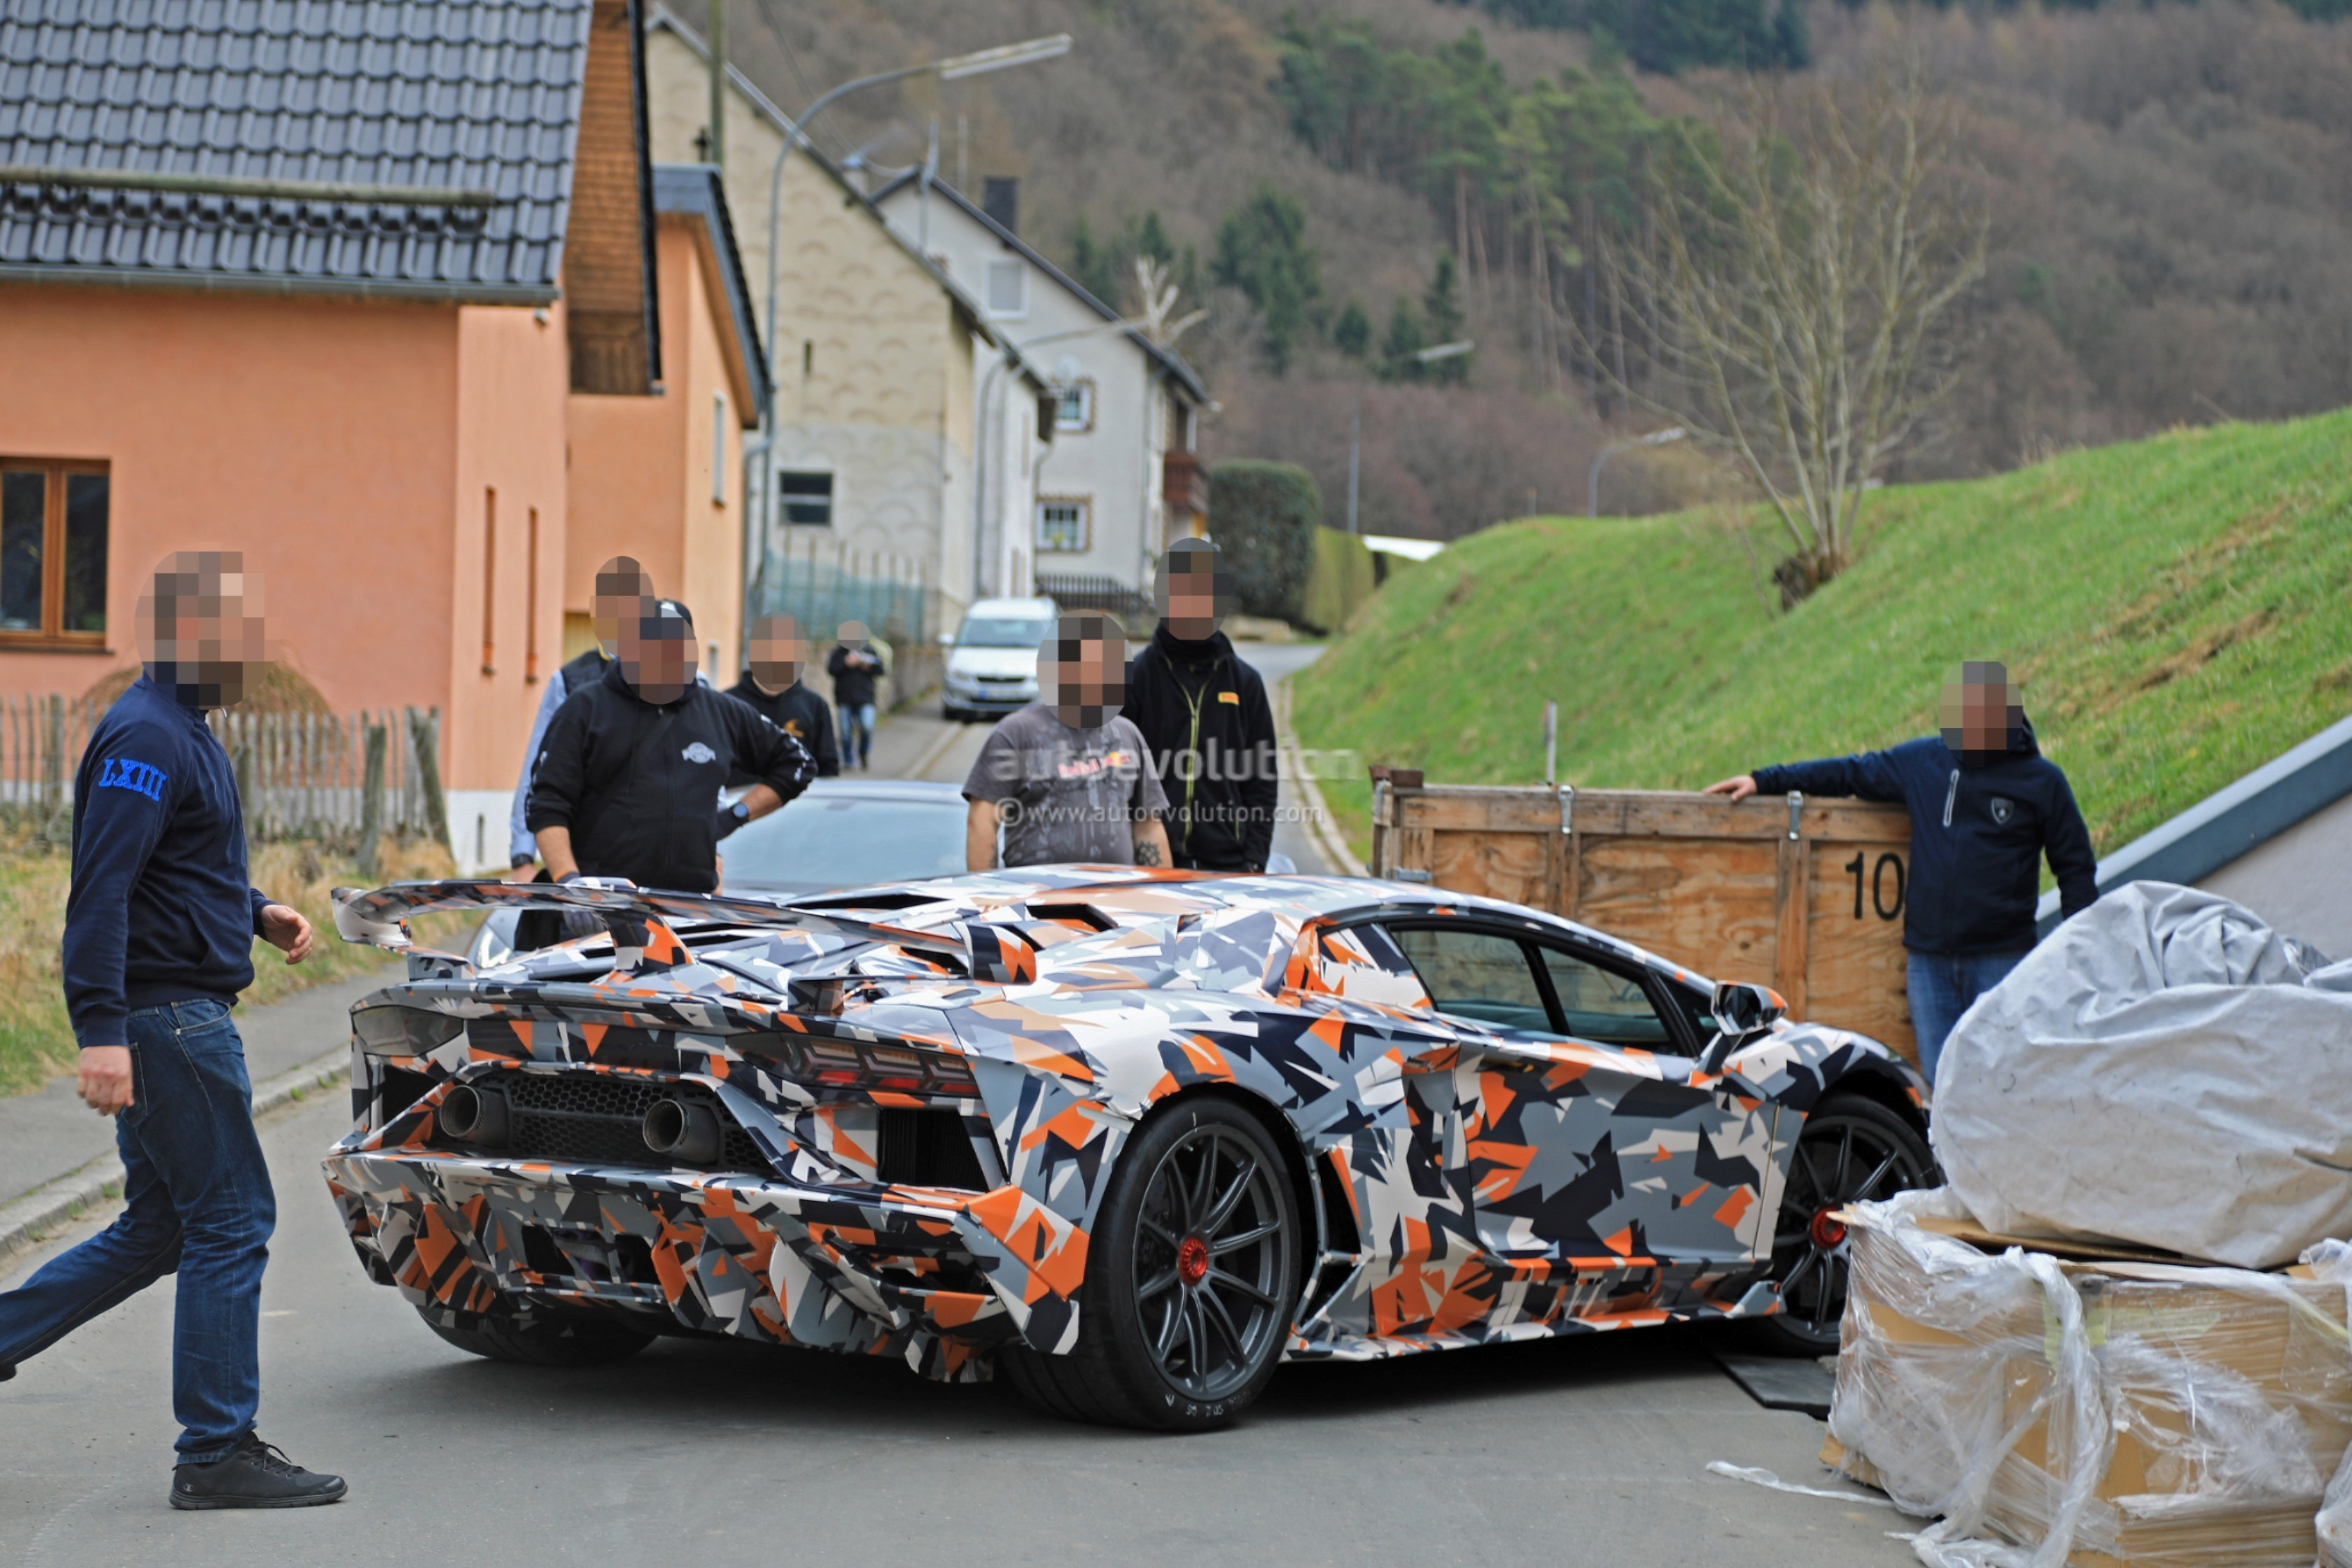 2019 Lamborghini Aventador Svj Looks Serious On Aero In Newest Spy